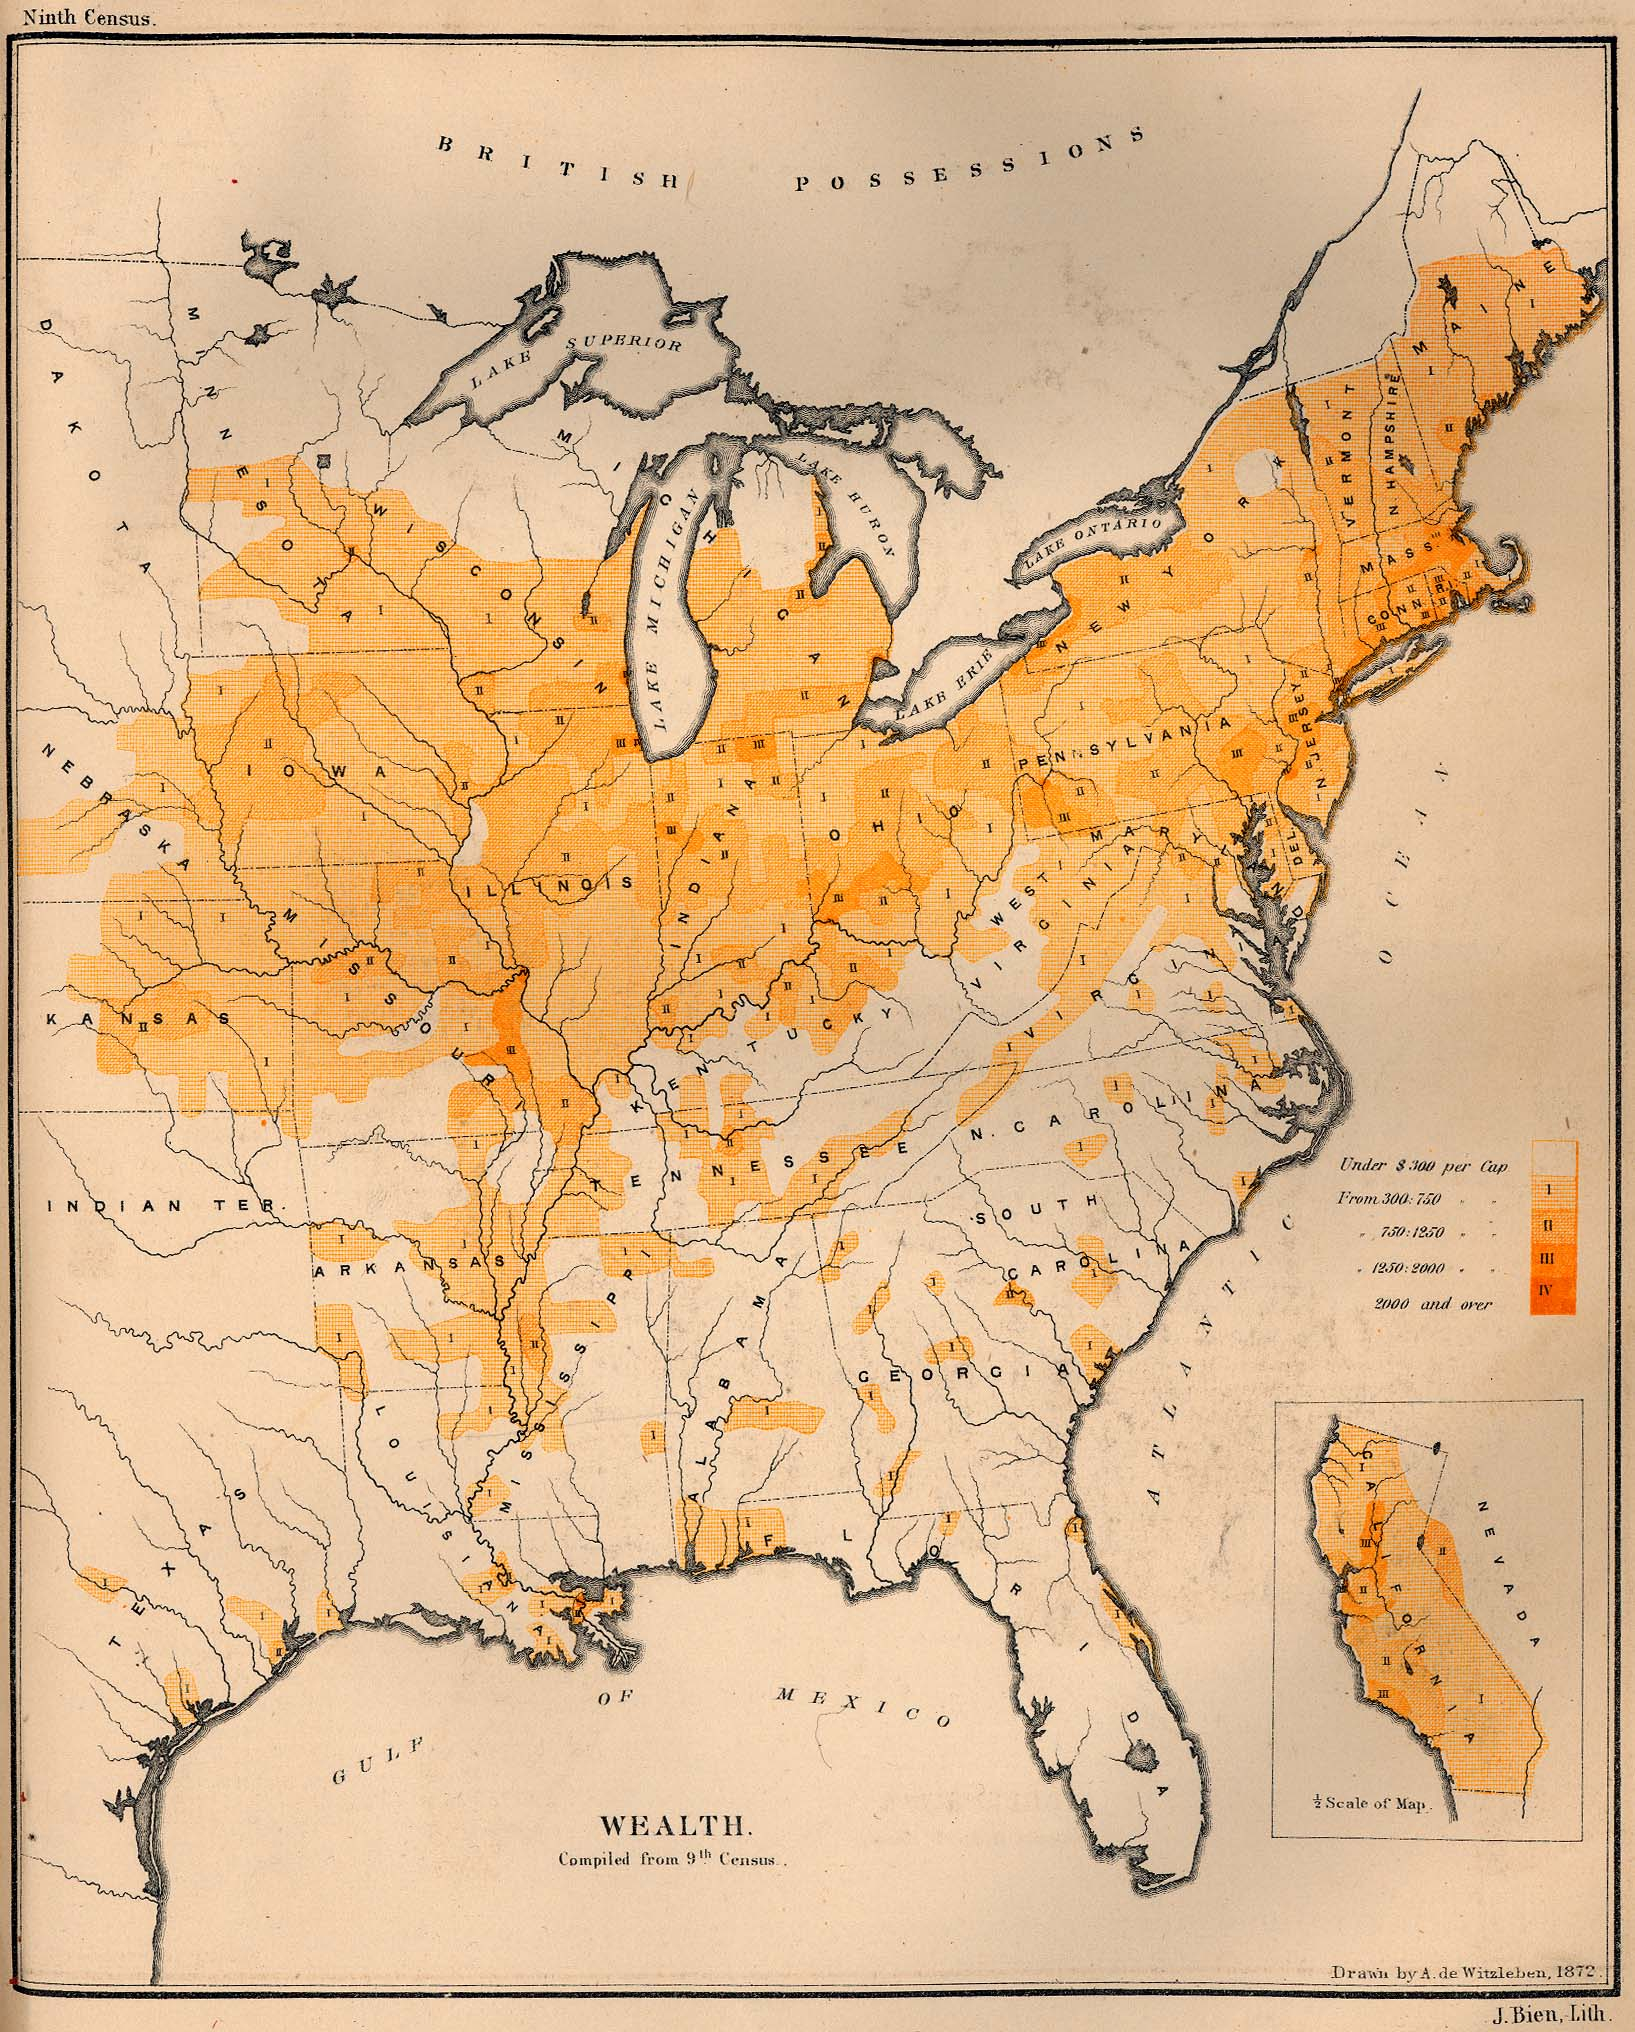 Maps   Public Domain Images Online Map F The United States on map of 50 states with names, map of south america, google america united states,